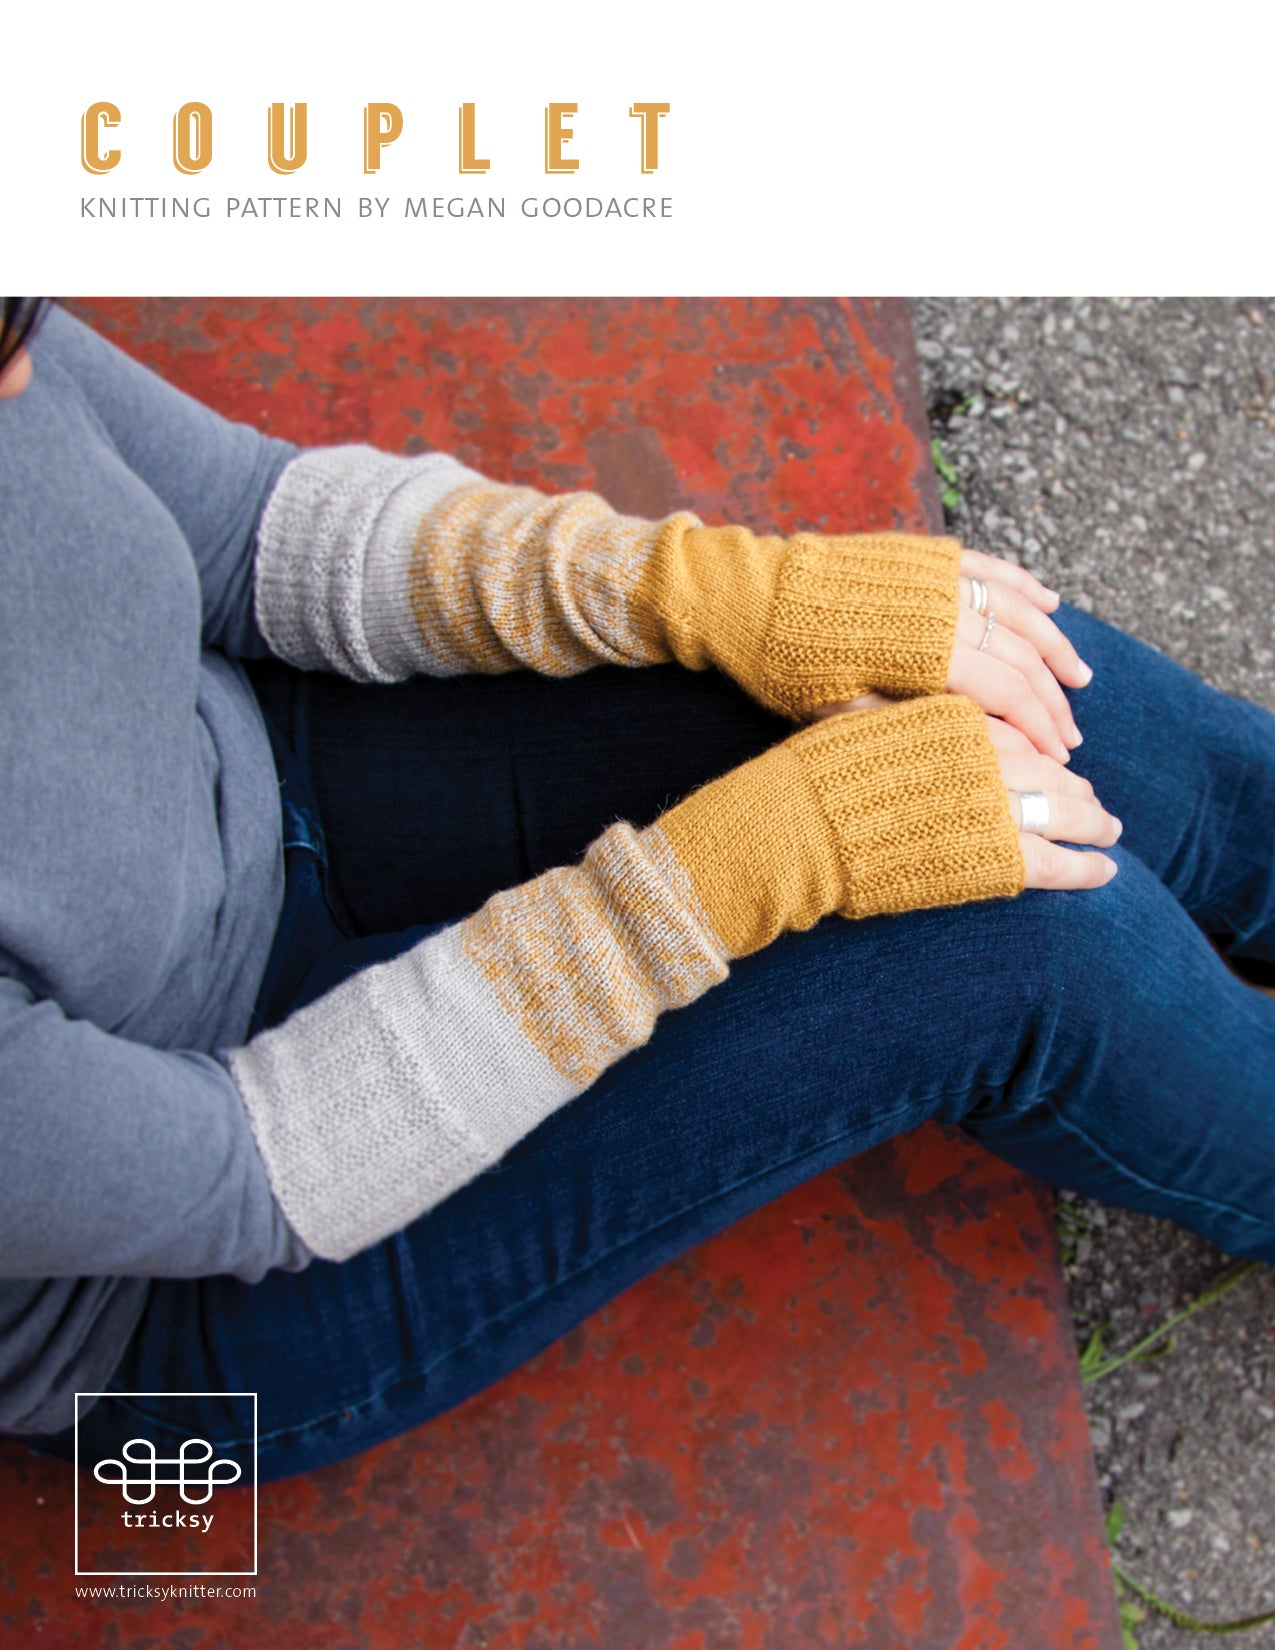 Couplet-Downloadable knitting pattern-Tricksy Knitter